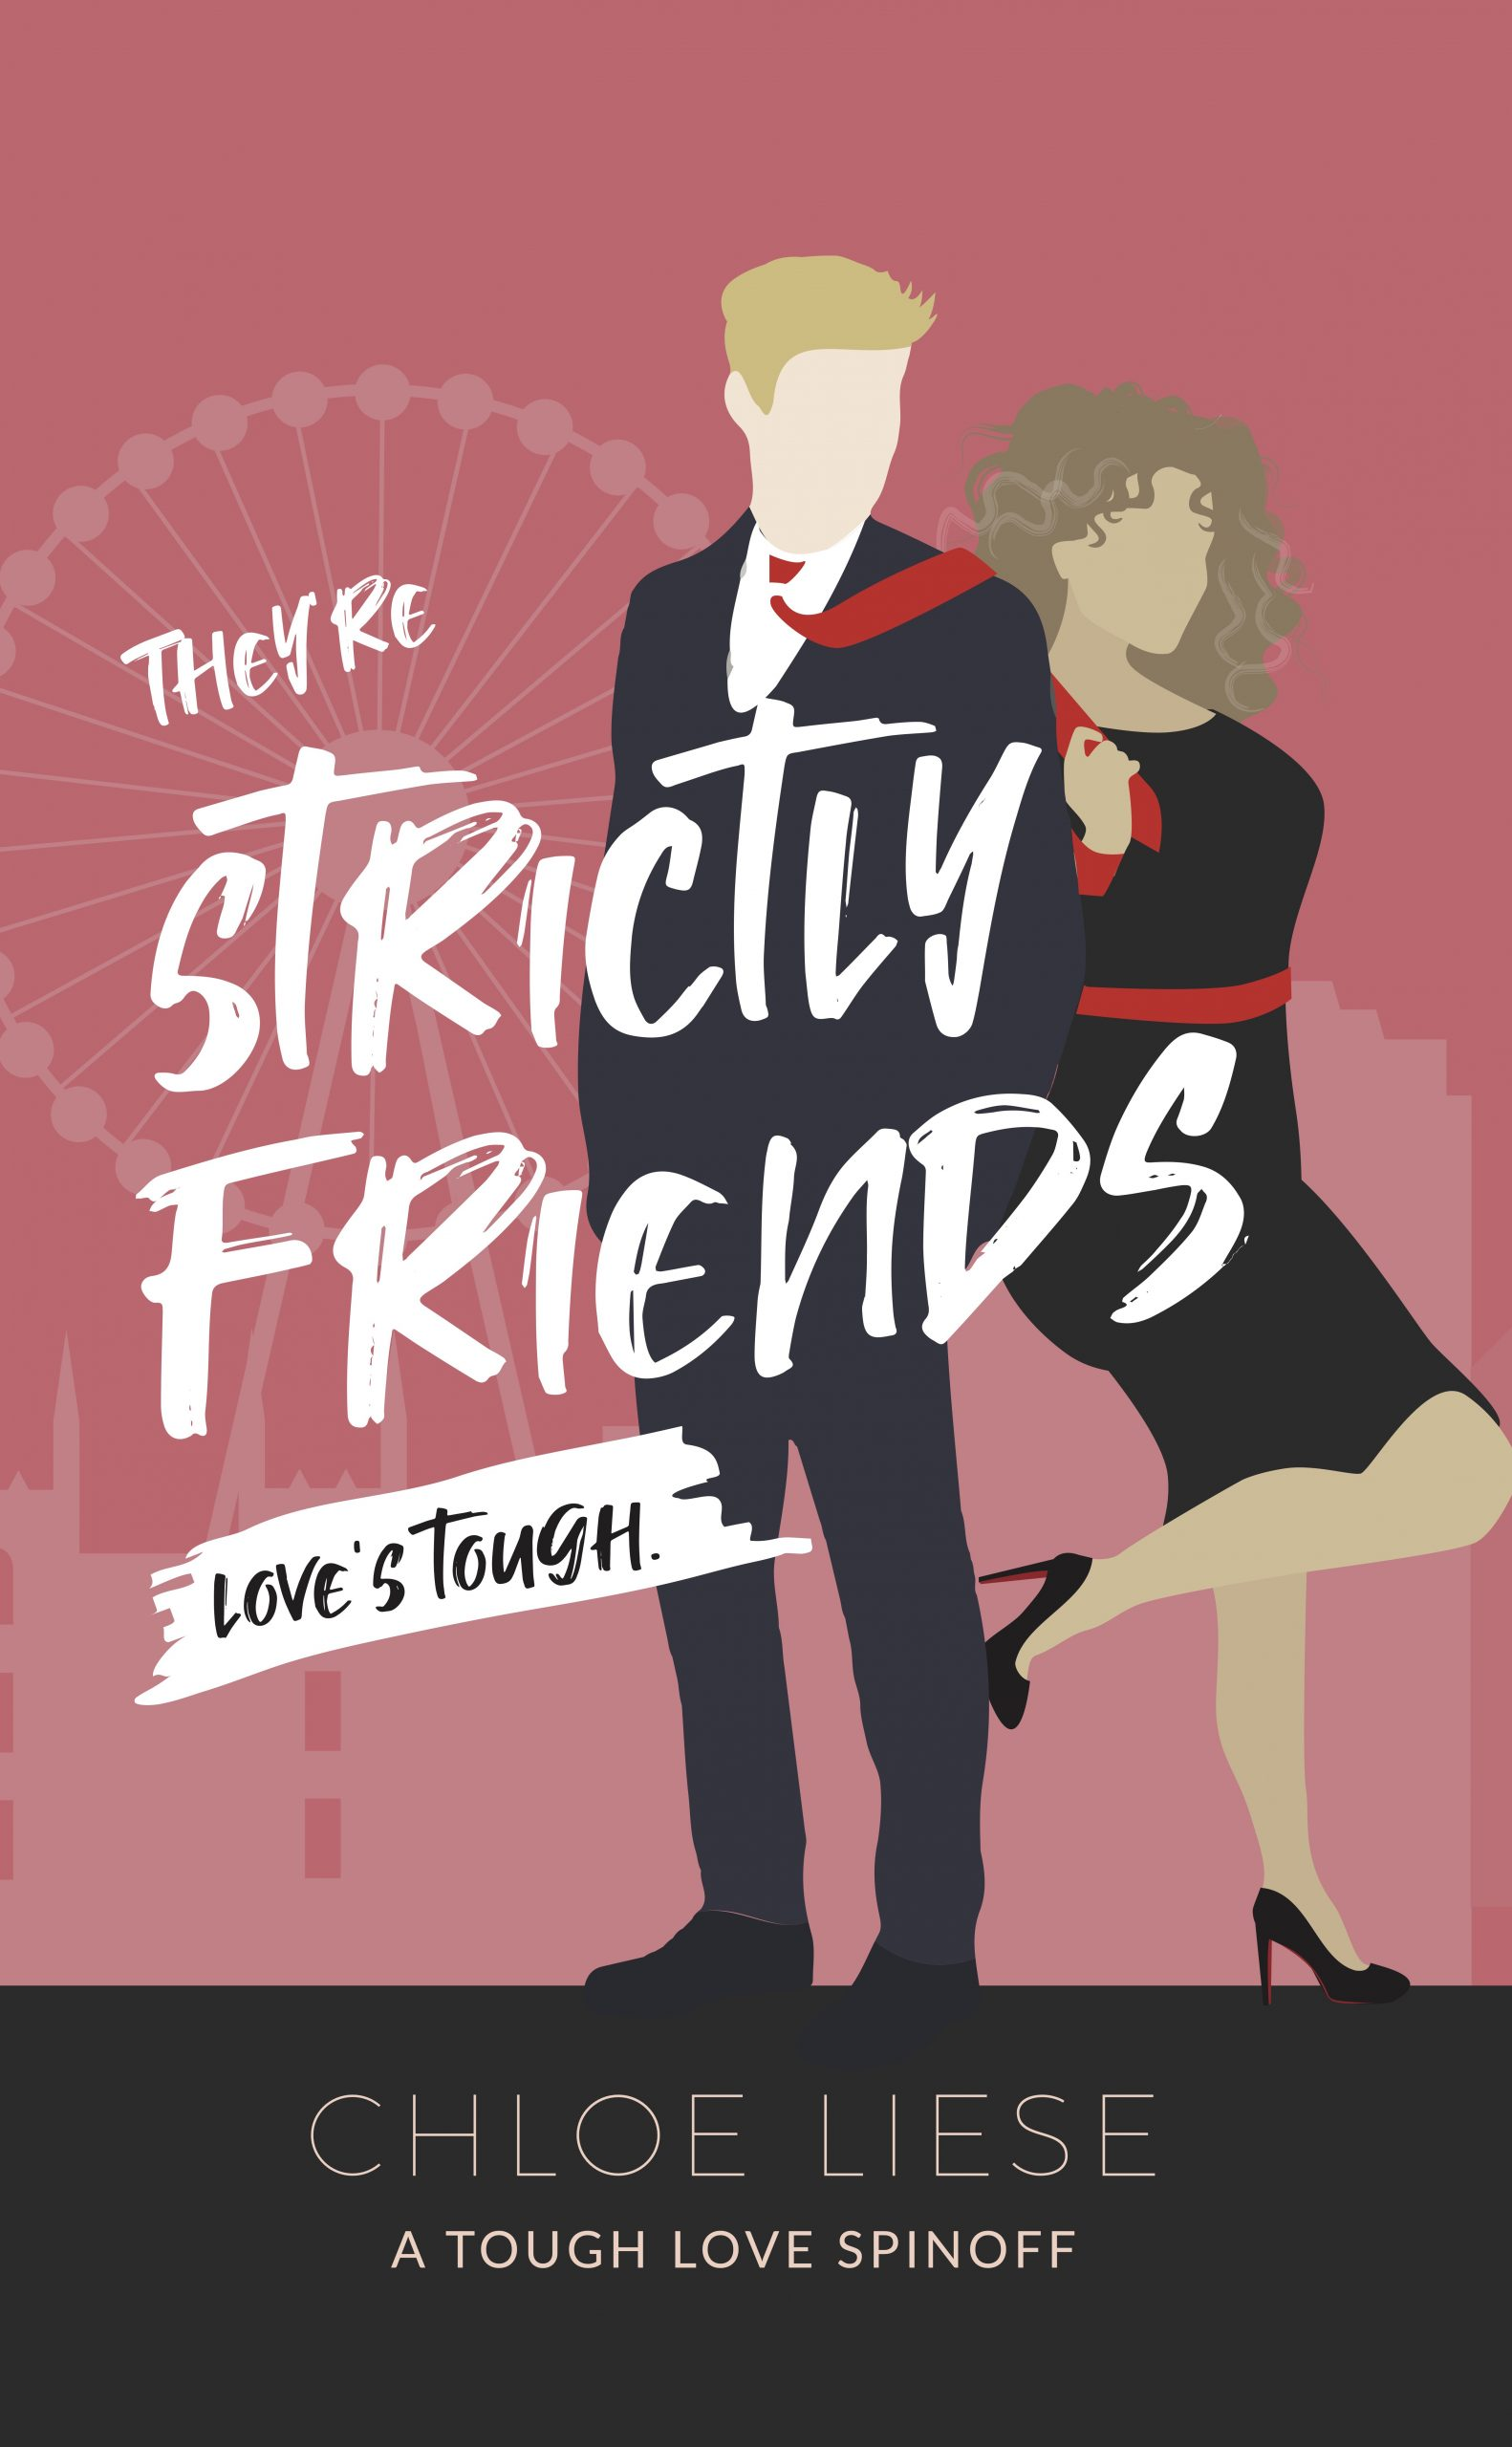 They're Strictly Friends book cover design by Chloe Liese